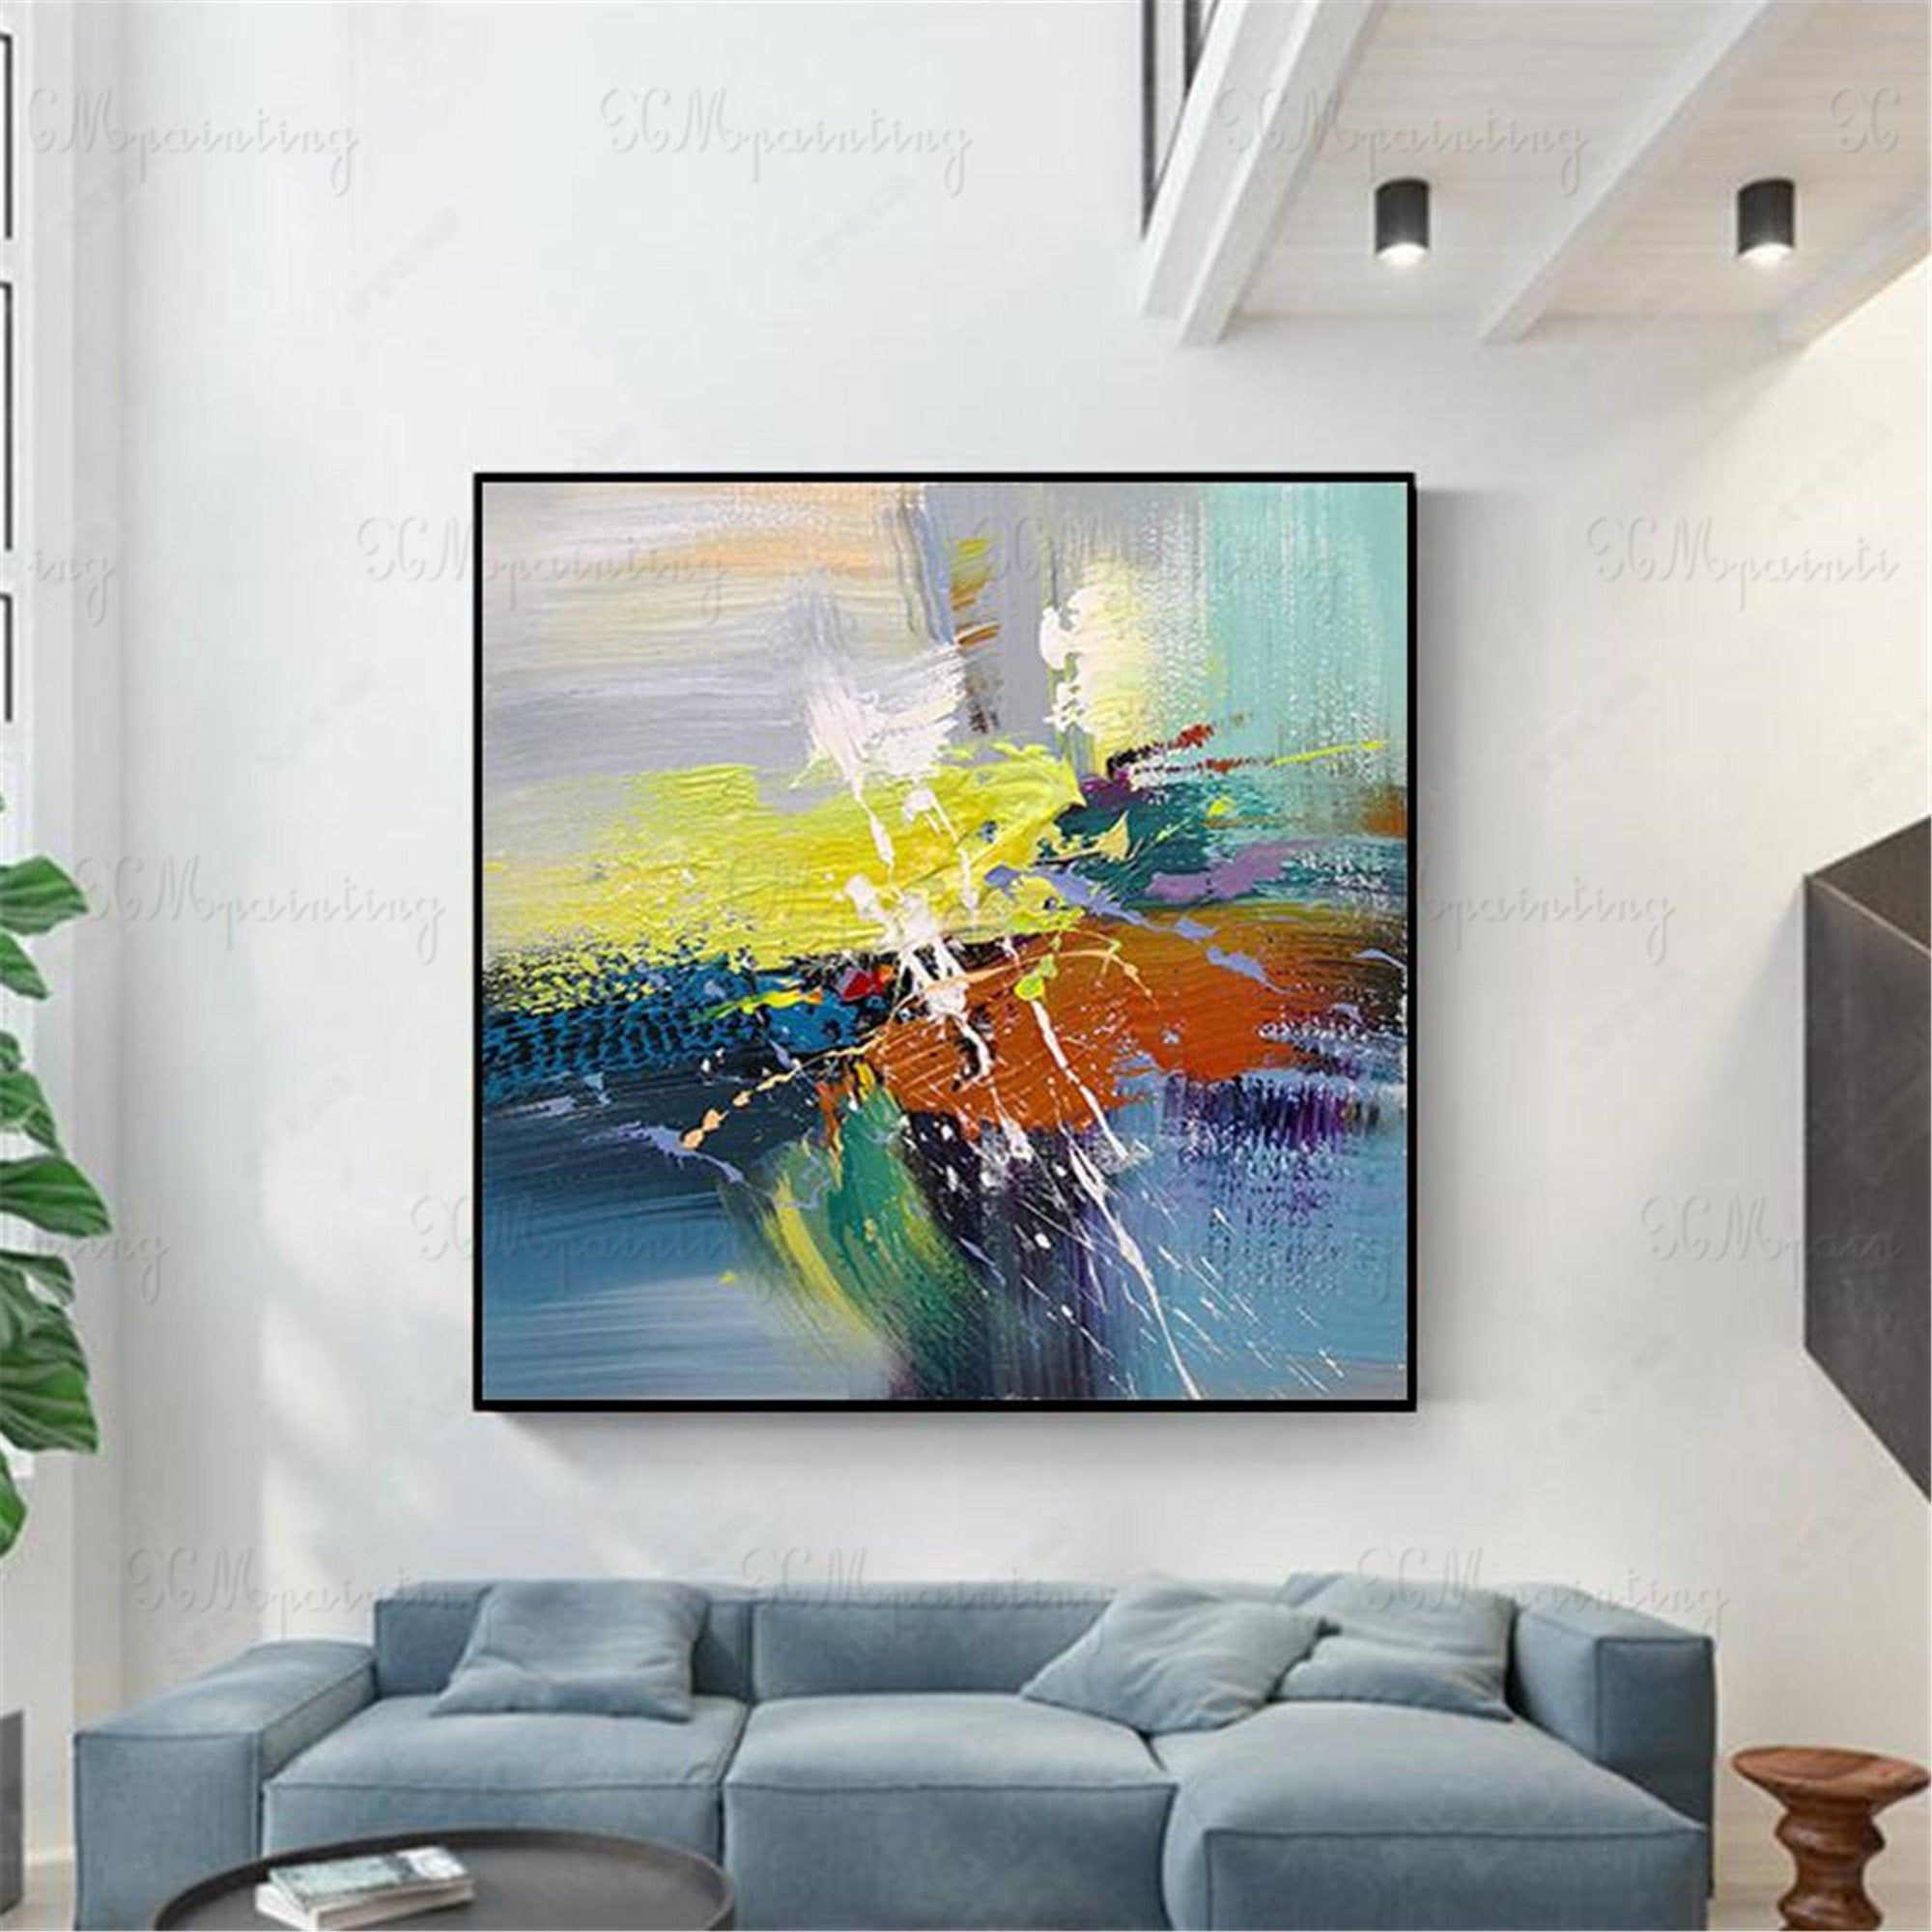 Abstract Painting Wall Art Pictures For Living Room Bedroom Etsy Abstract Painting Painting Wall Art Pictures